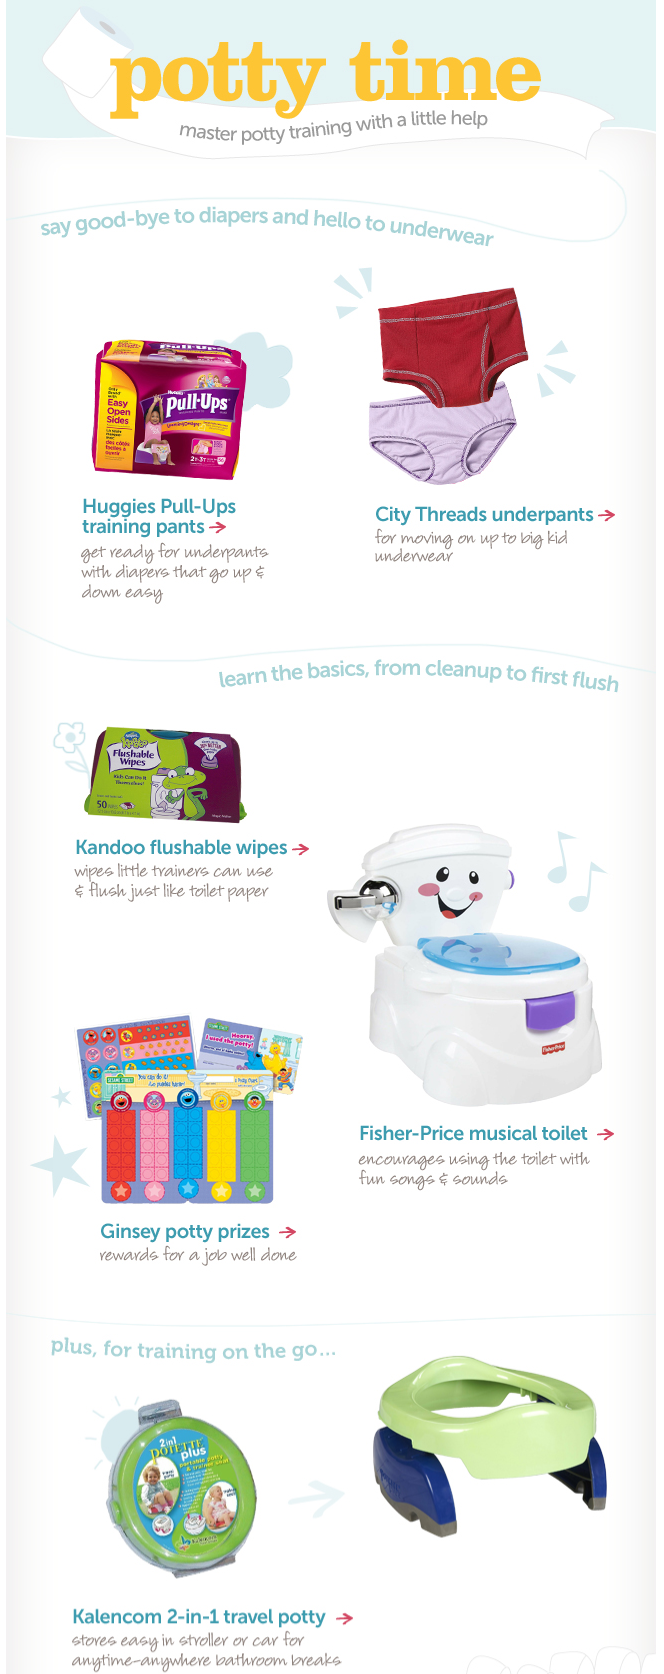 Email: Potty Training